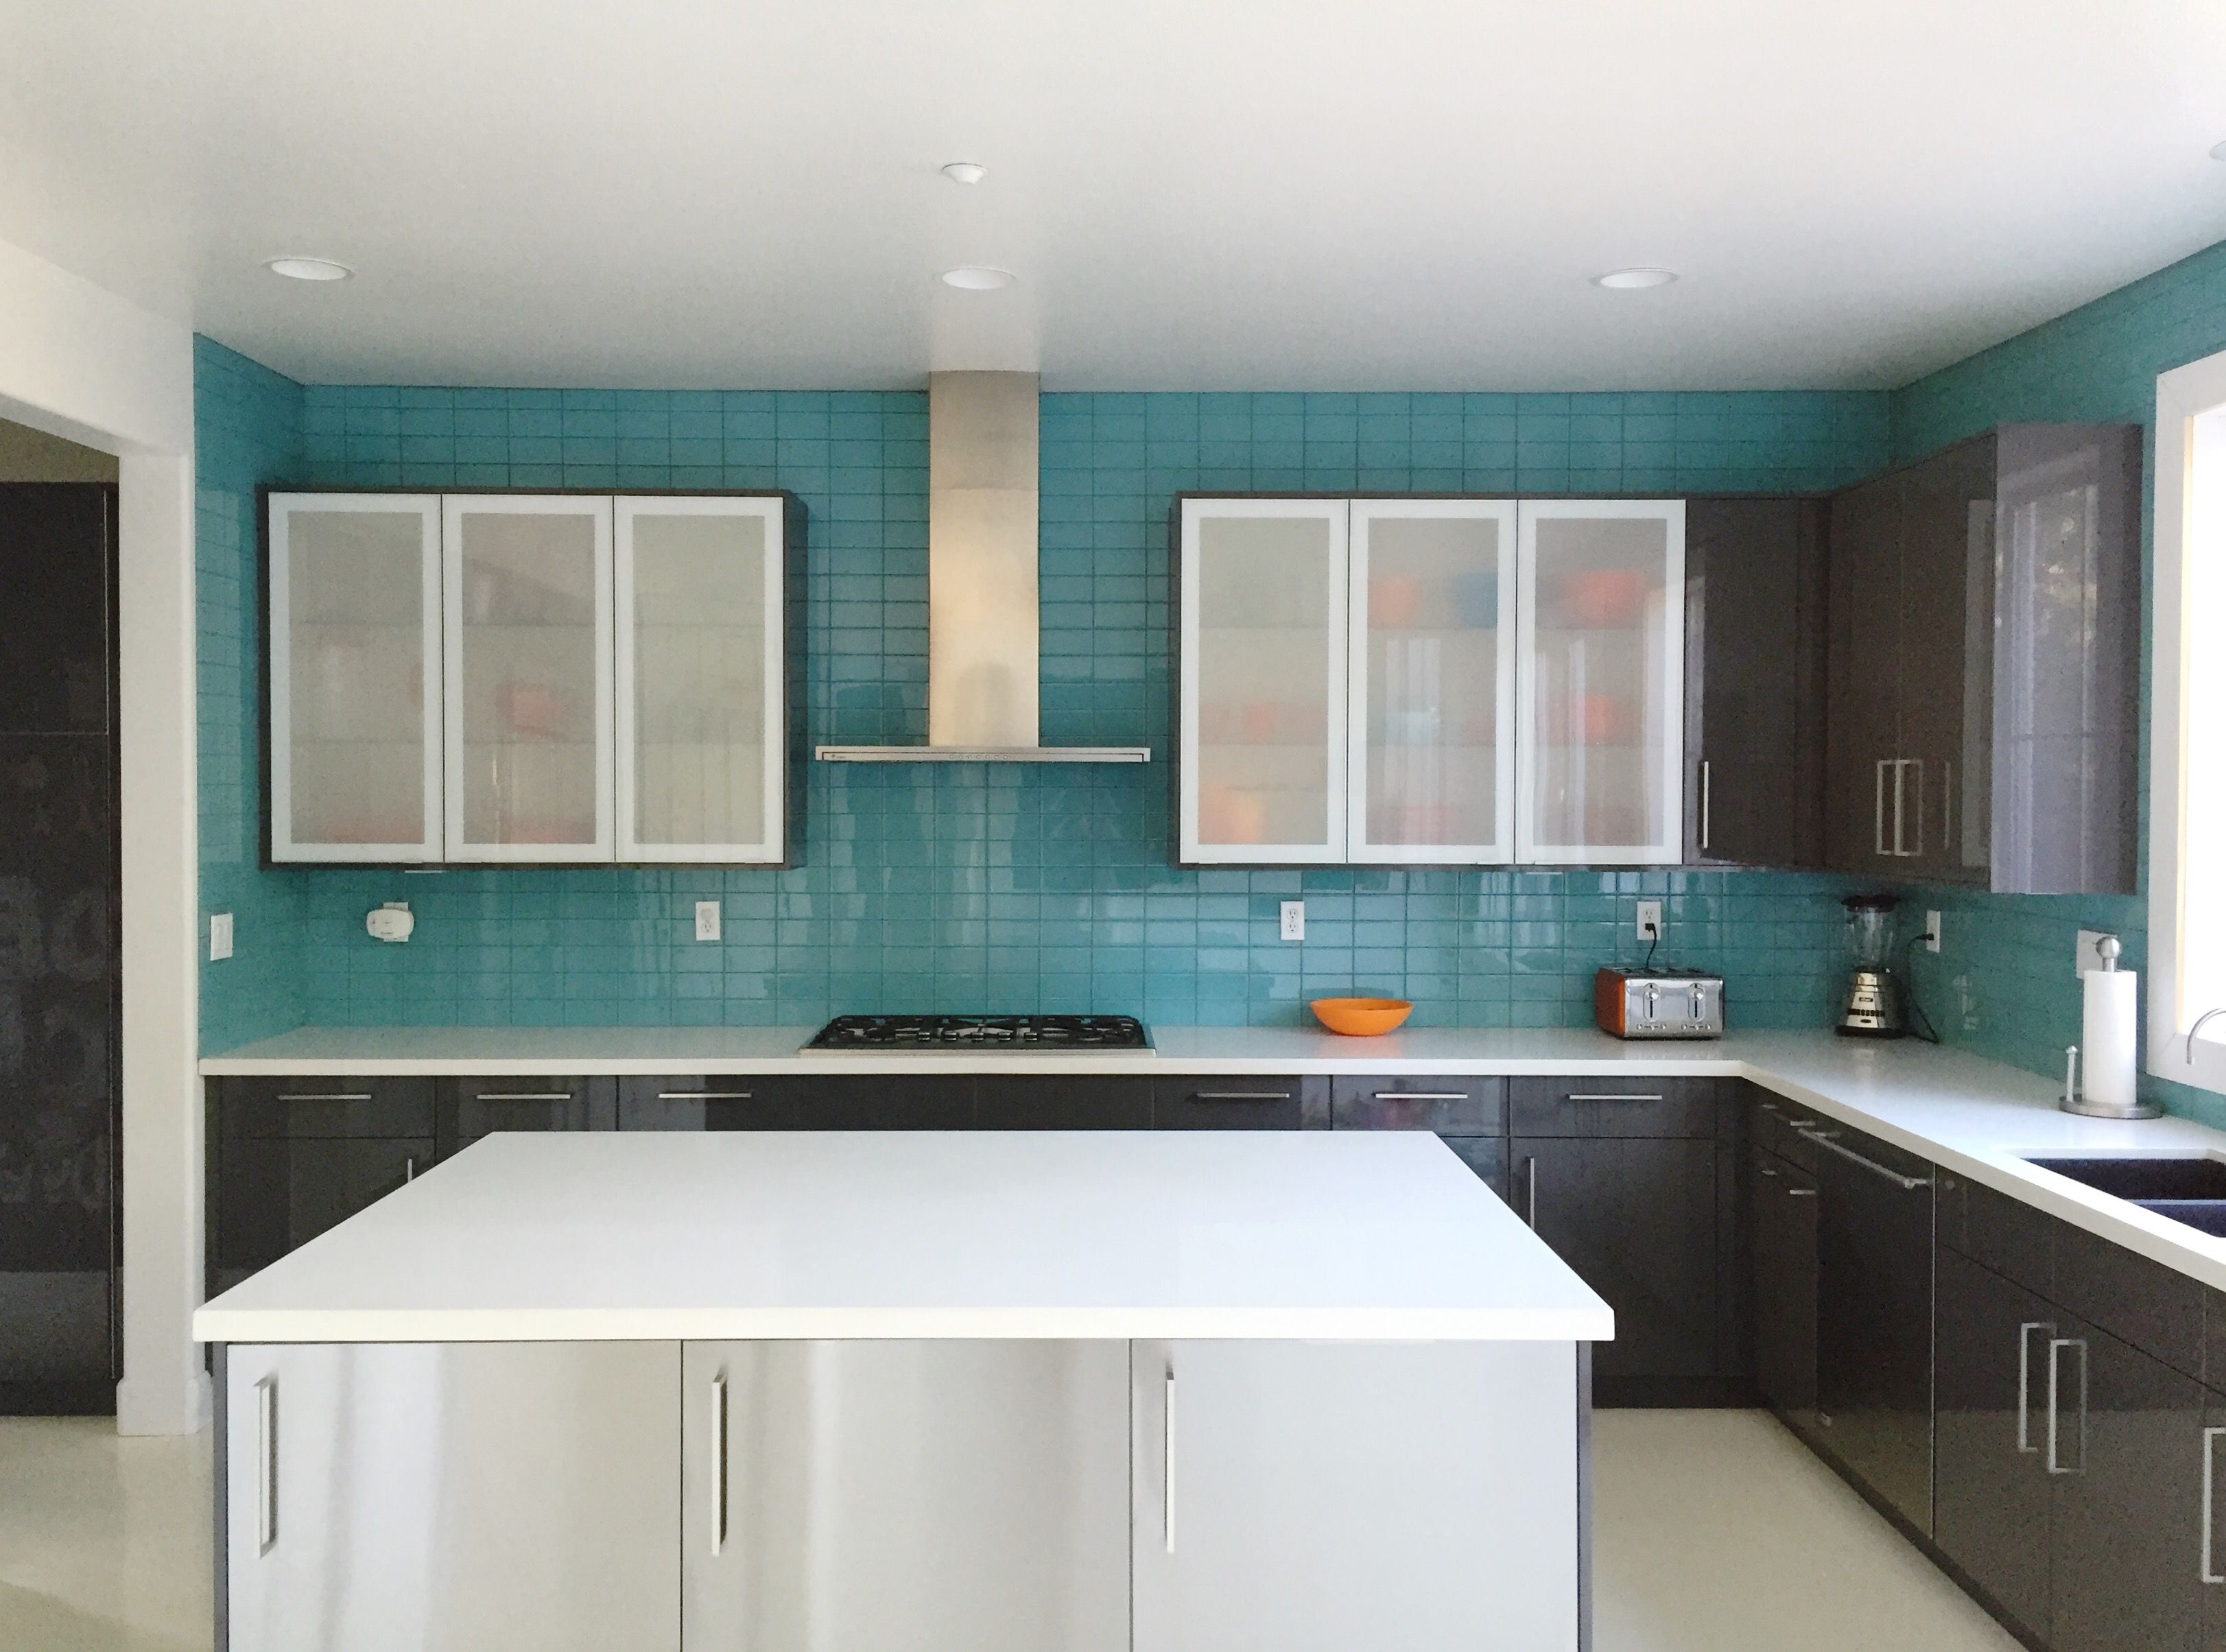 Aqua Glass Subway Tile | Pinterest | Modern kitchen backsplash, Aqua ...